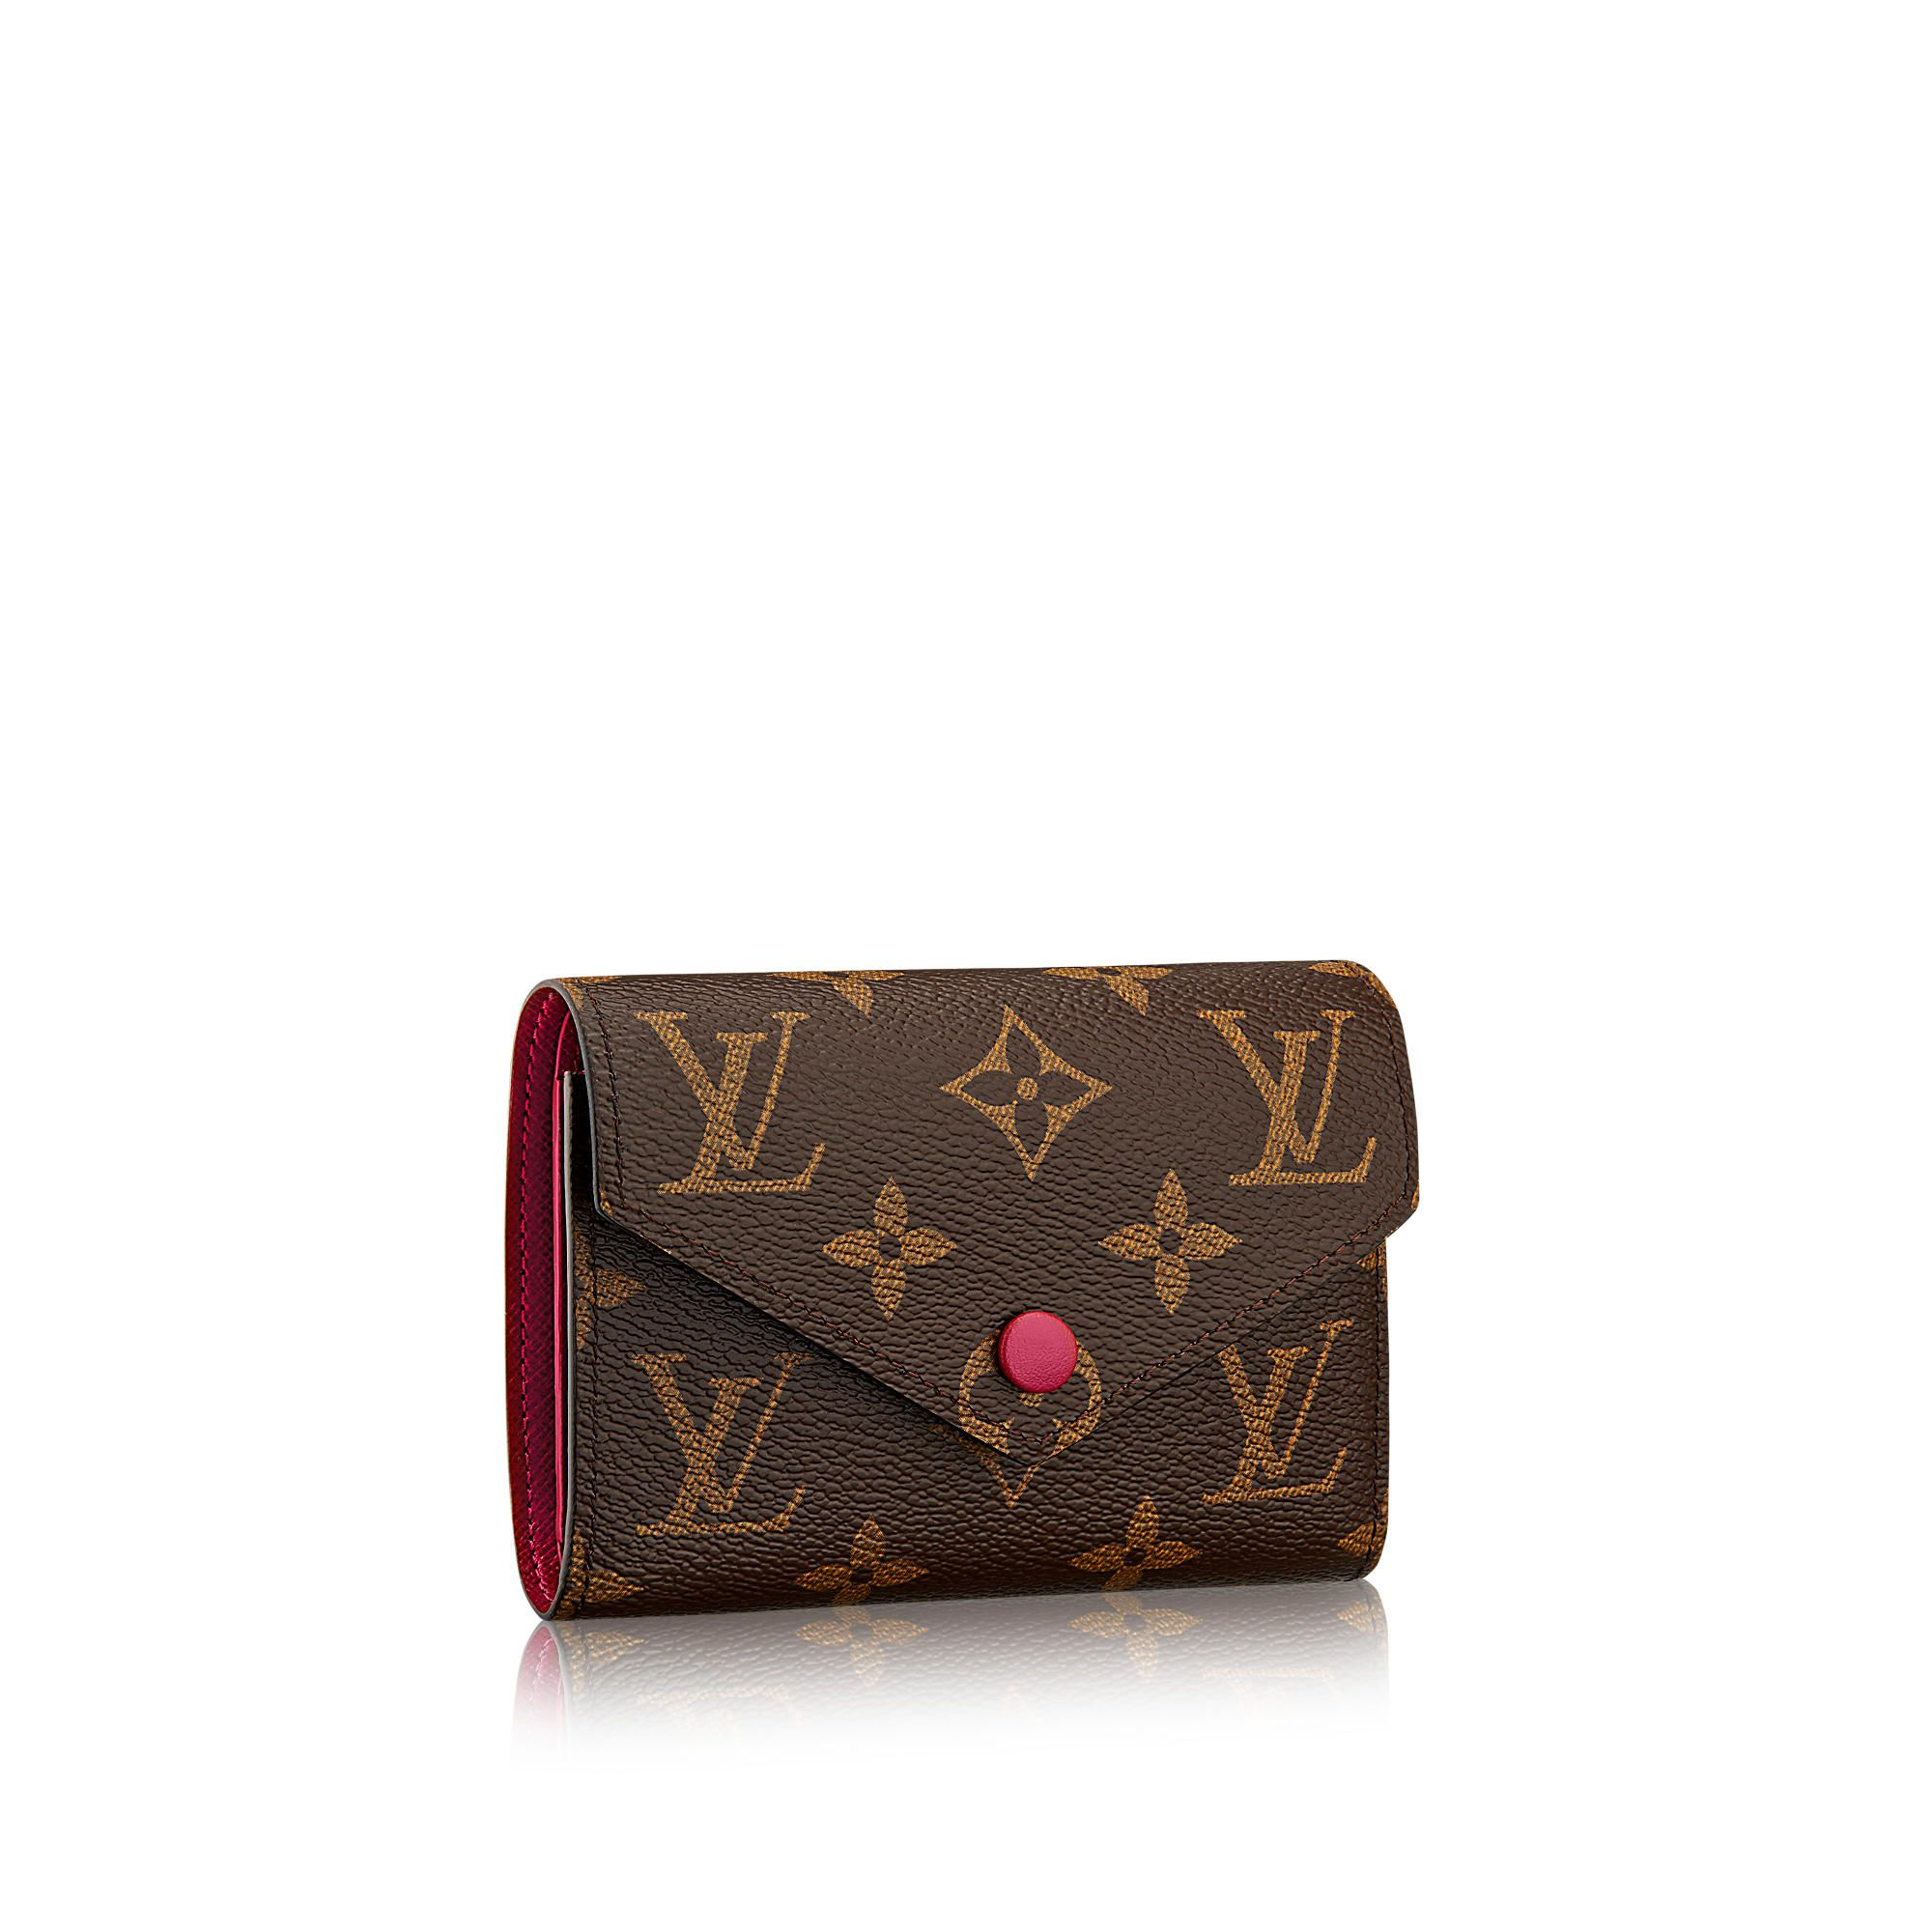 louis vuitton wallet price. key:product_page_share_discover_product victorine wallet via louis vuitton price